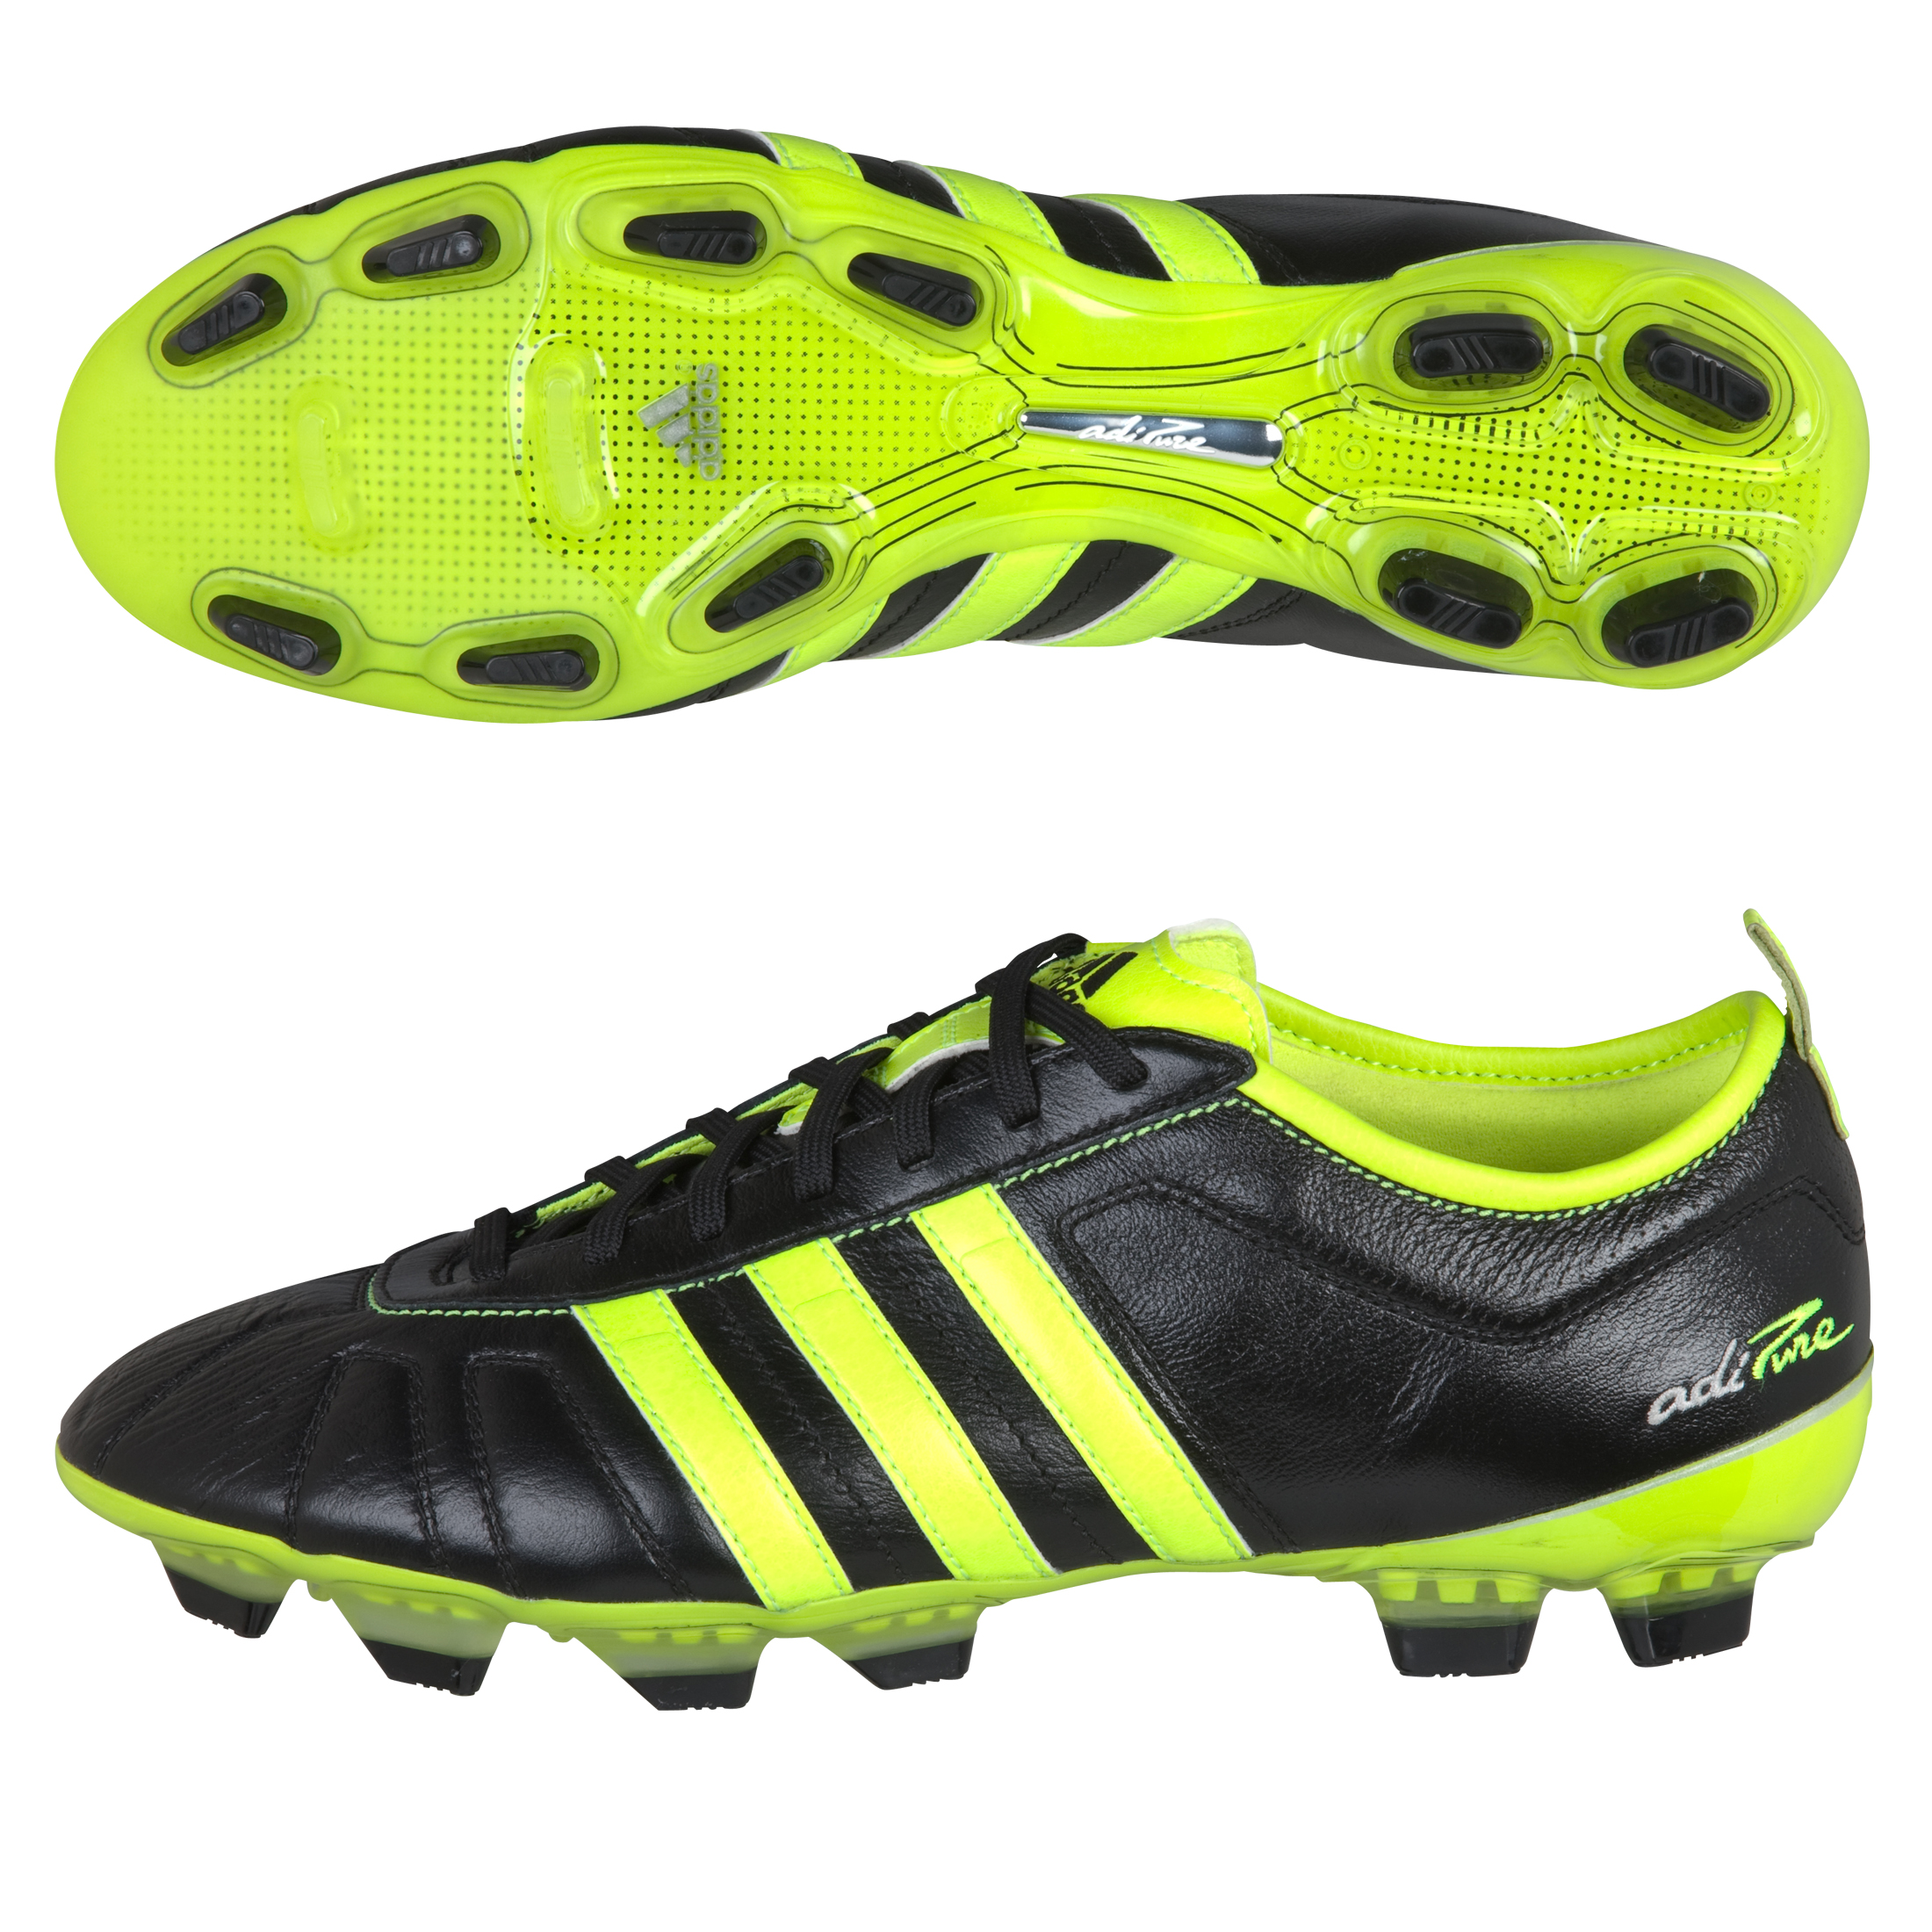 adidas adiPURE IV TRX Firm Ground Football Boots - Black/Electricity/Silver Met